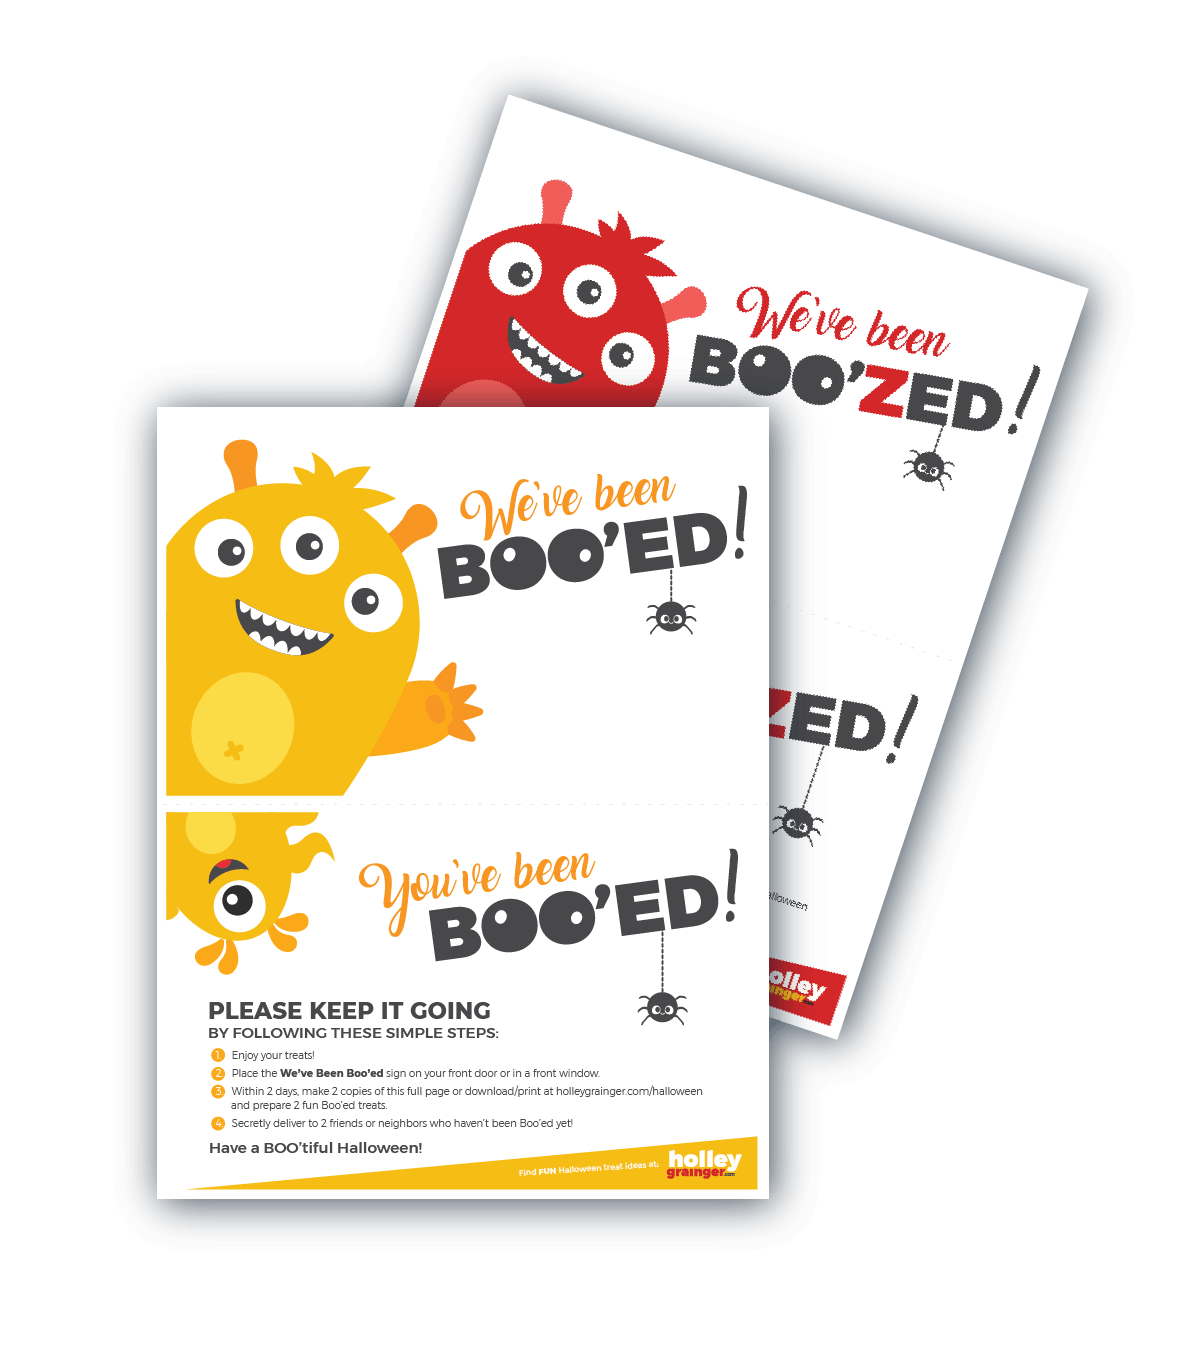 photograph regarding You've Been Booed Printable named Youve Been Booed! Absolutely free Halloween Printable Handle Recommendations